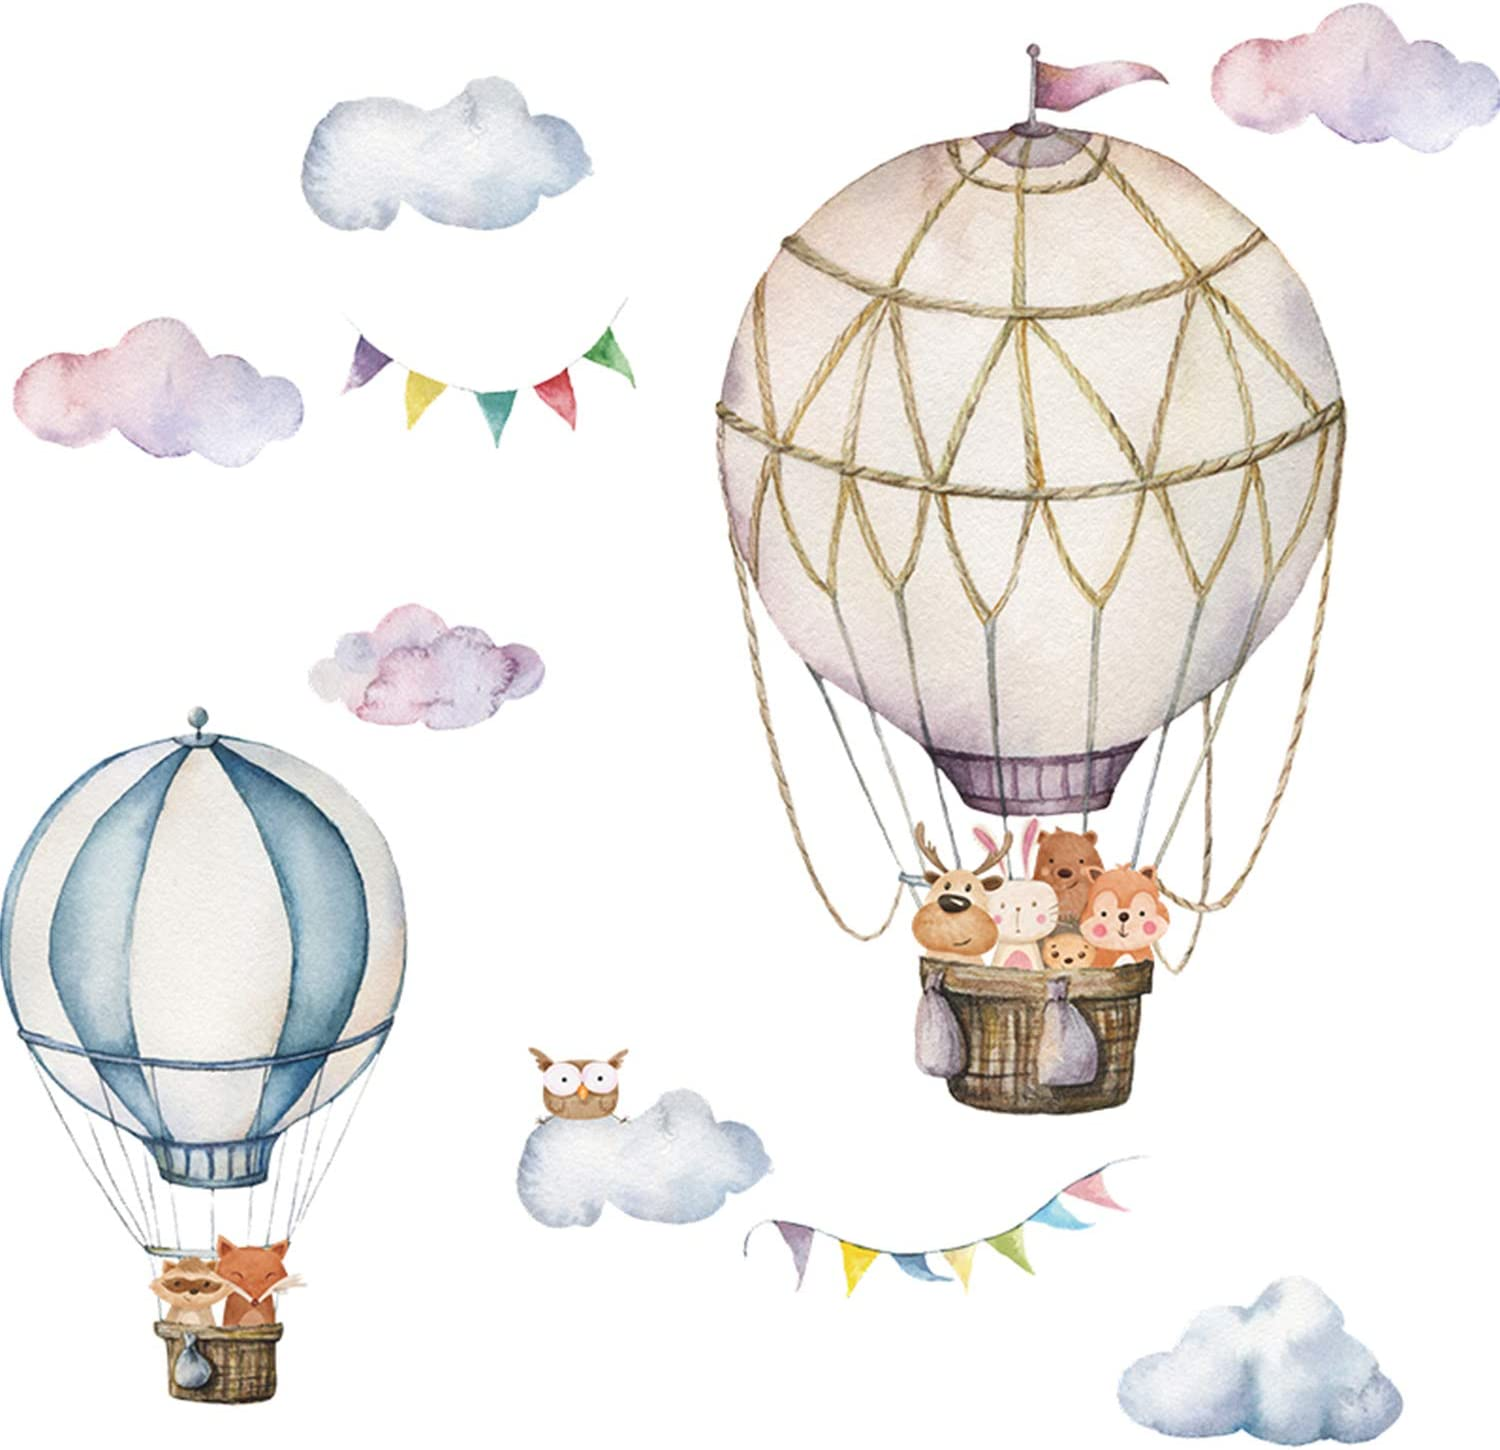 Hot Air Balloon Wall Decals - Wall Stickers for Kids Room Removable Peel and Stick Balloons School Home Decor in Living Room Bedroom Nursery